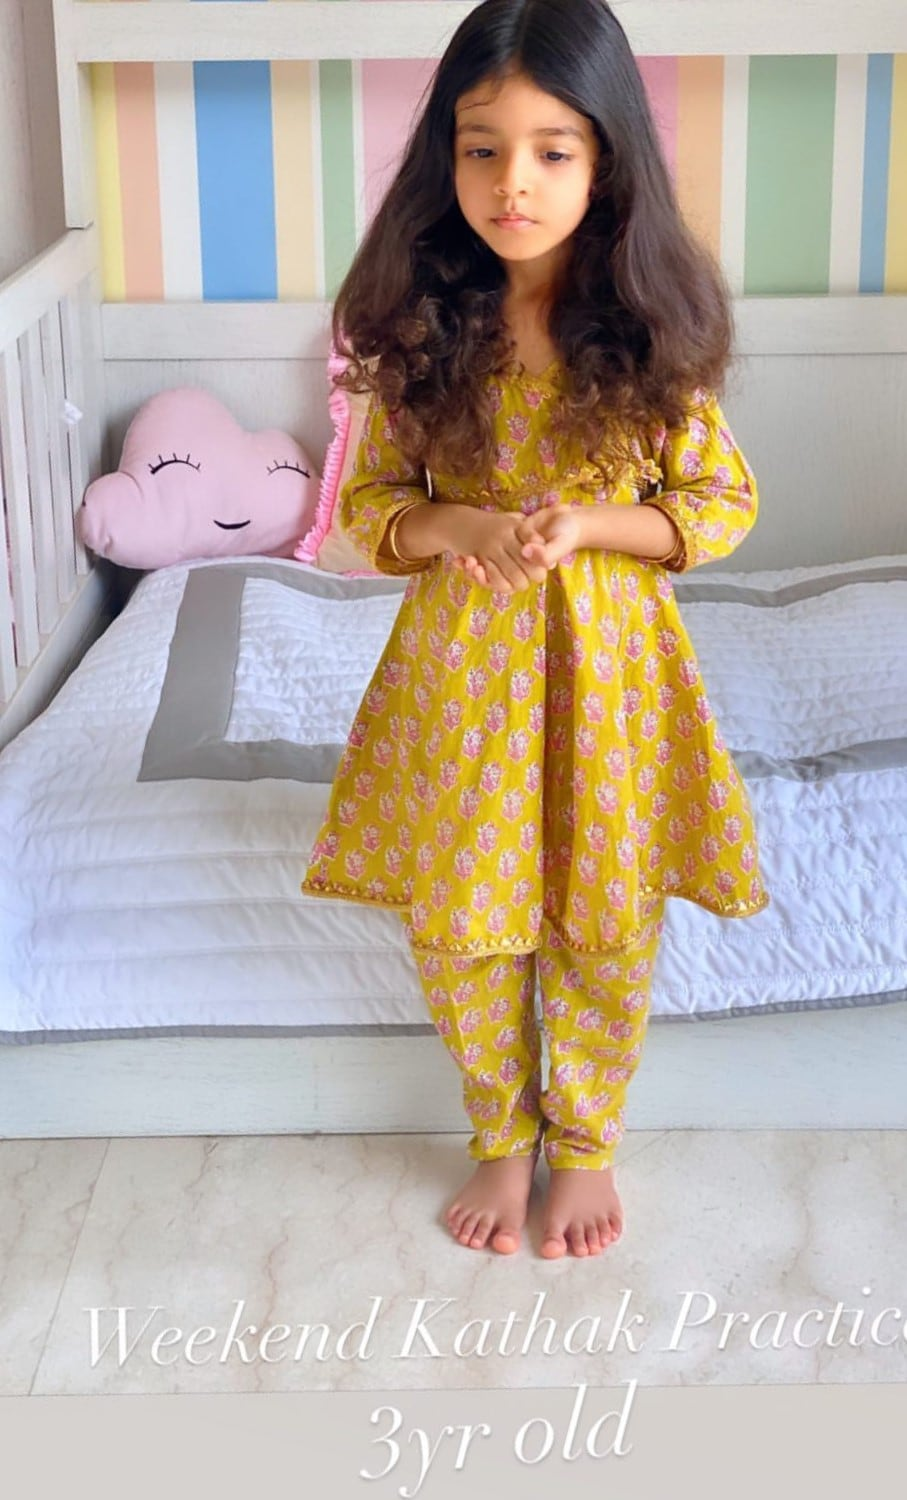 Asin shares a pic of her daughter Arin.